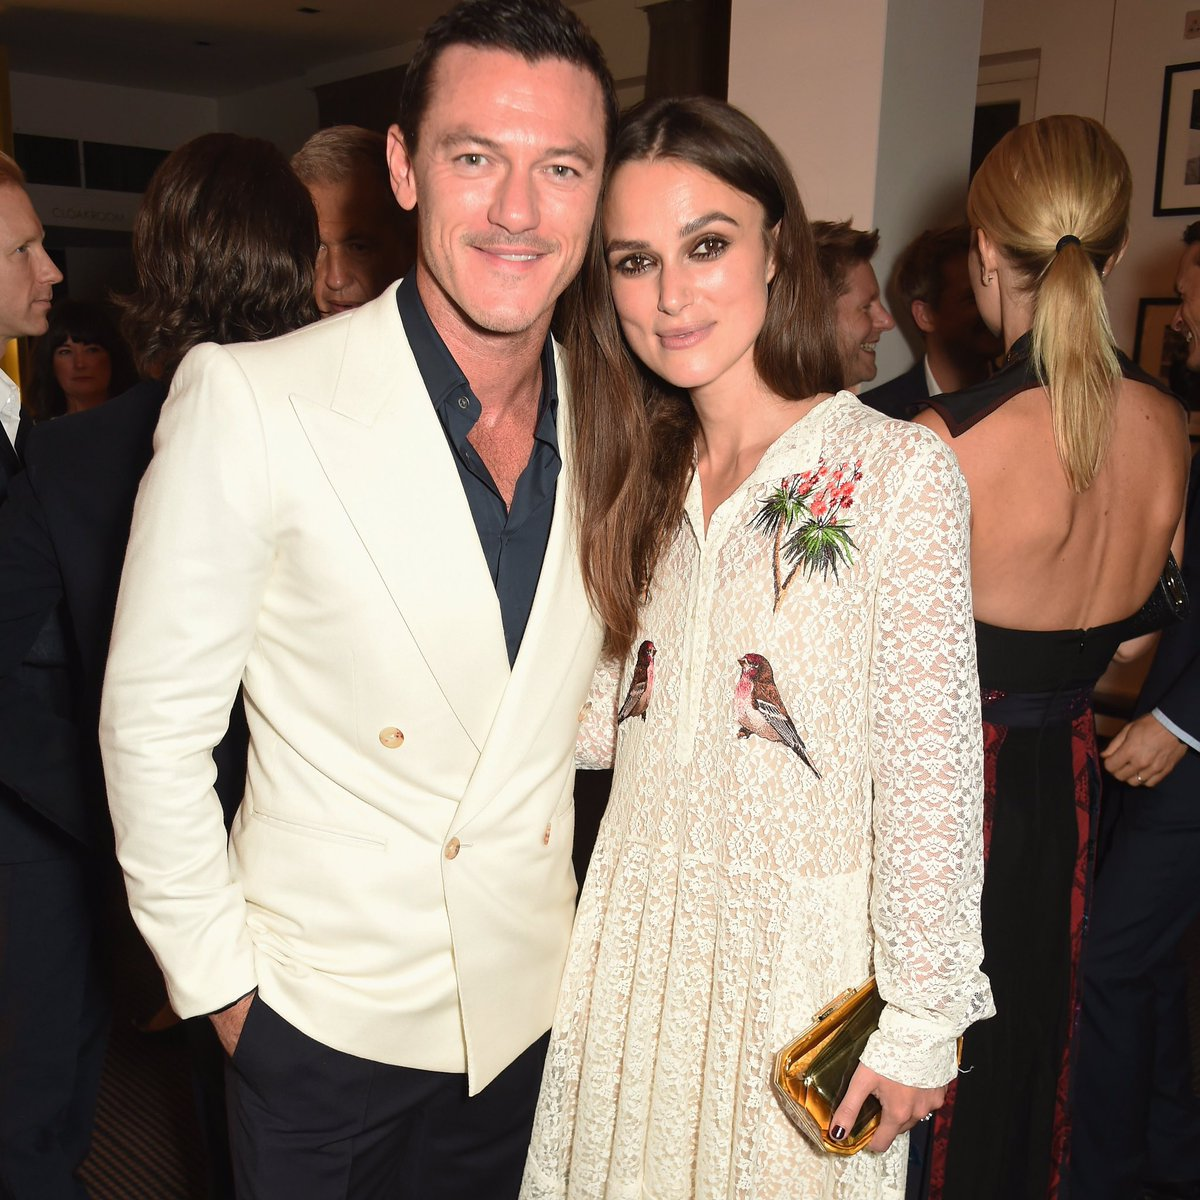 Thank you #LukeEvans for stopping by to #GreenCarpetChallenge2016 #KeiraKnightley @BonaveriItaly @BAFTA https://t.co/mWDjRAolQu